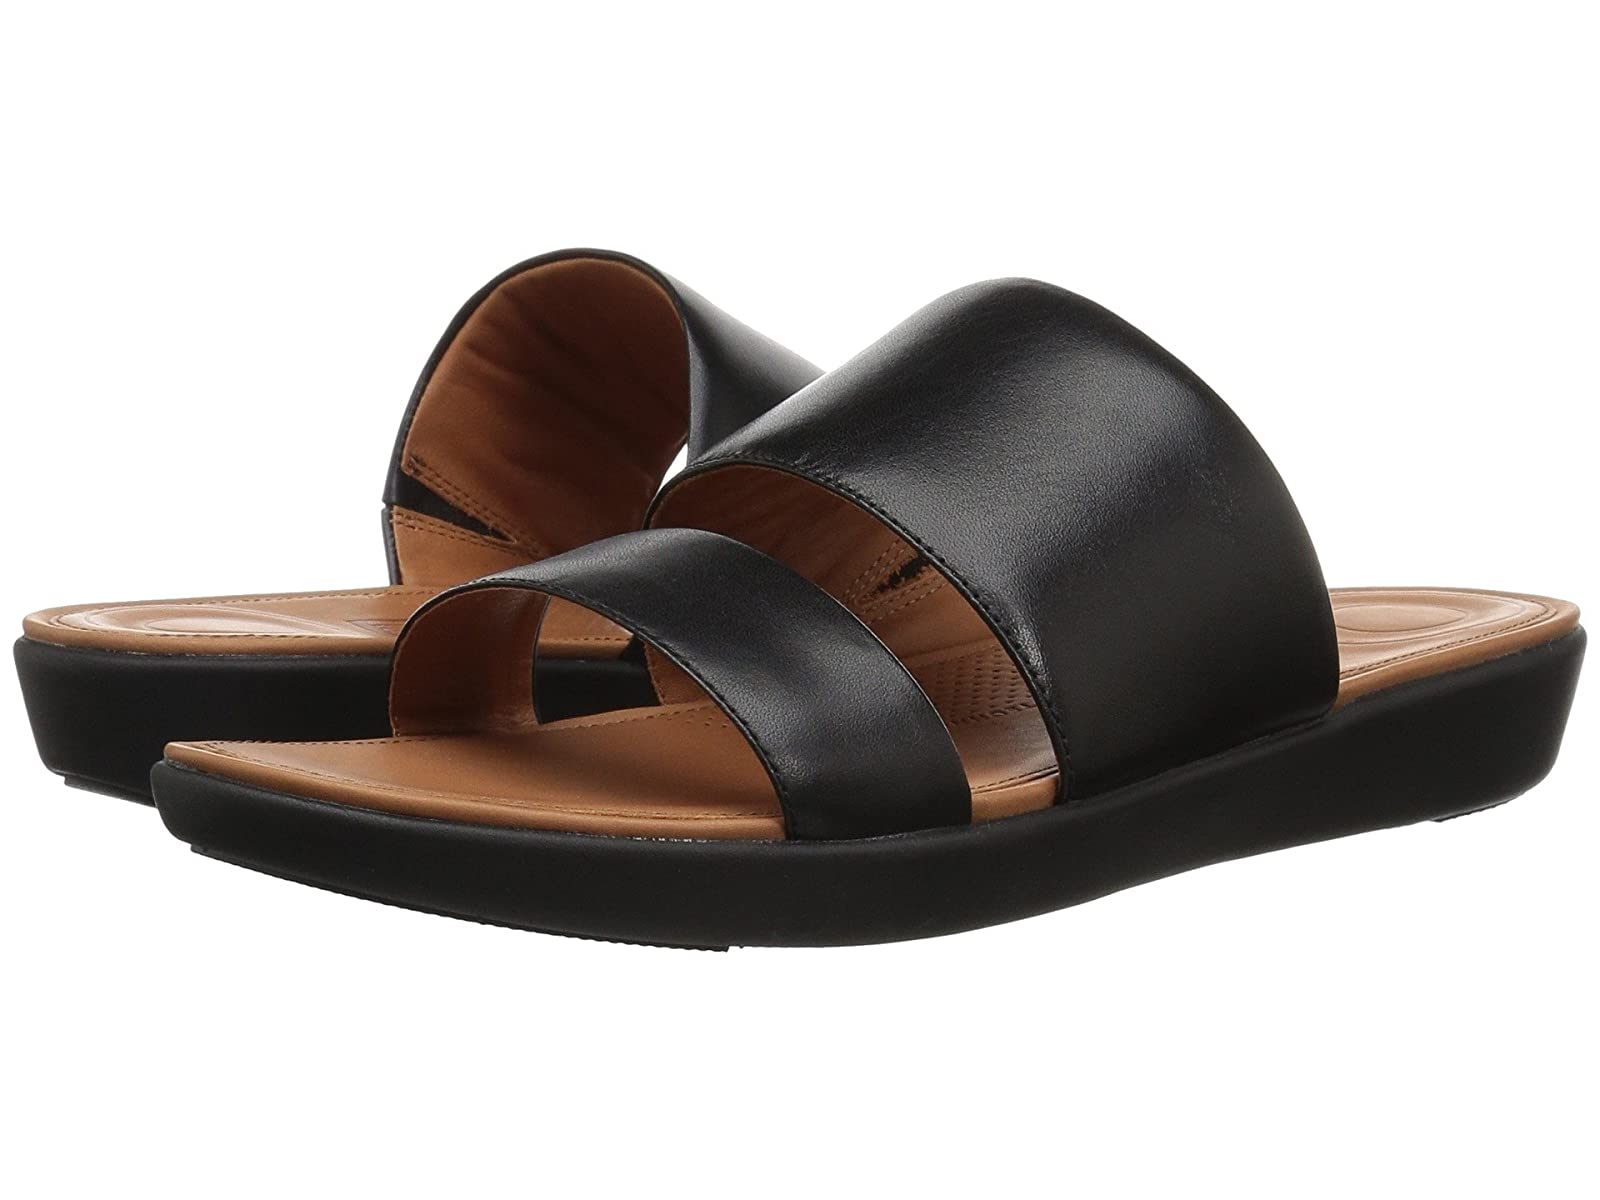 FitFlop Delta Slide SandalsCheap and distinctive eye-catching shoes